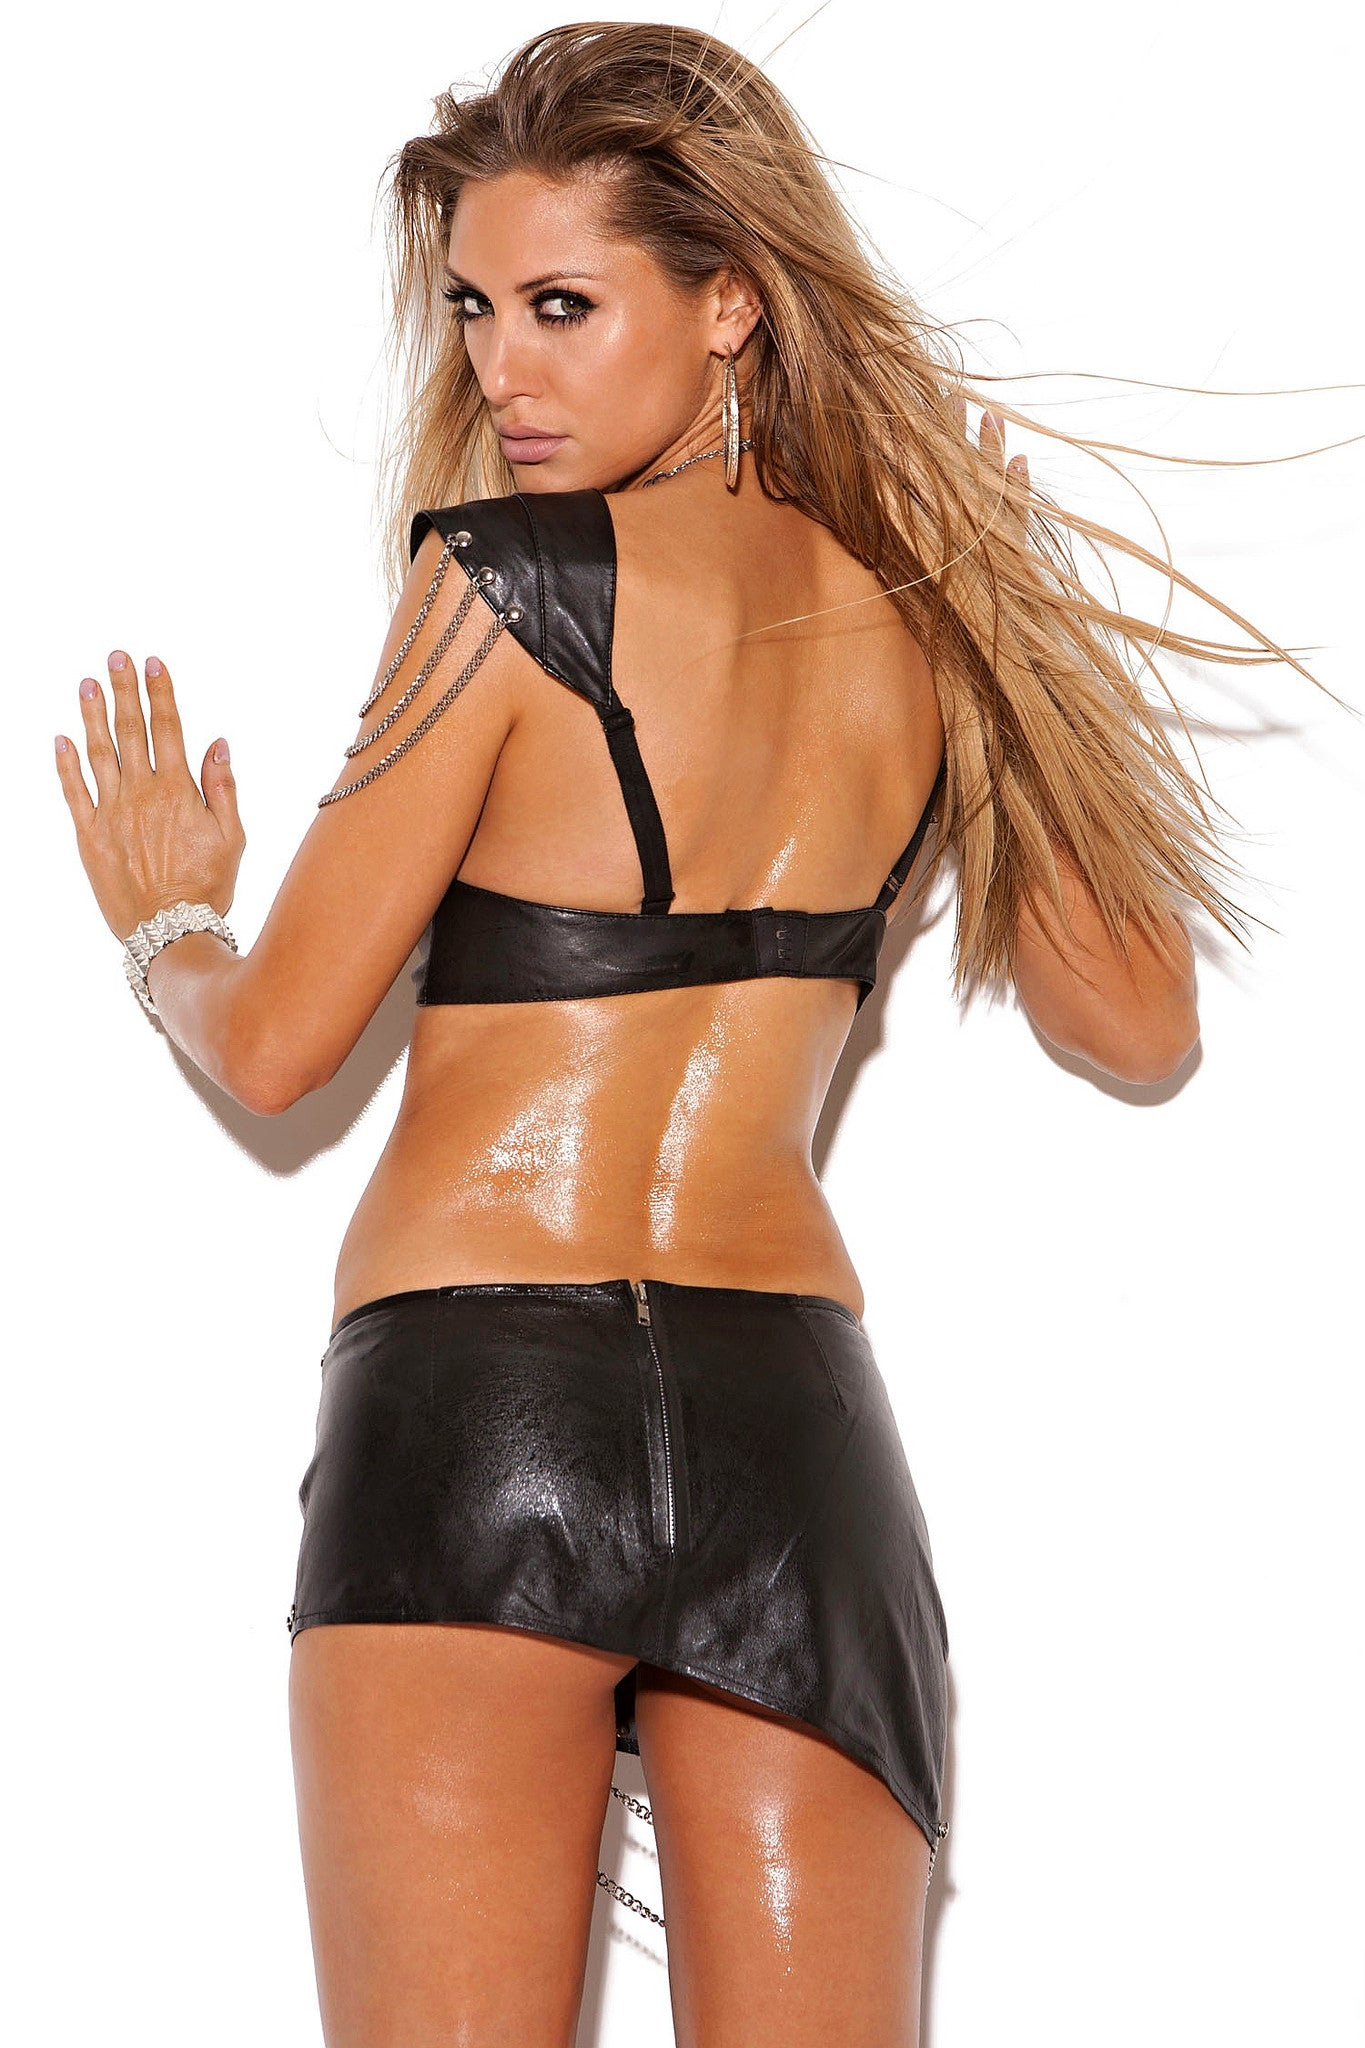 L6822 Leather mini skirt - Sexylingerieland